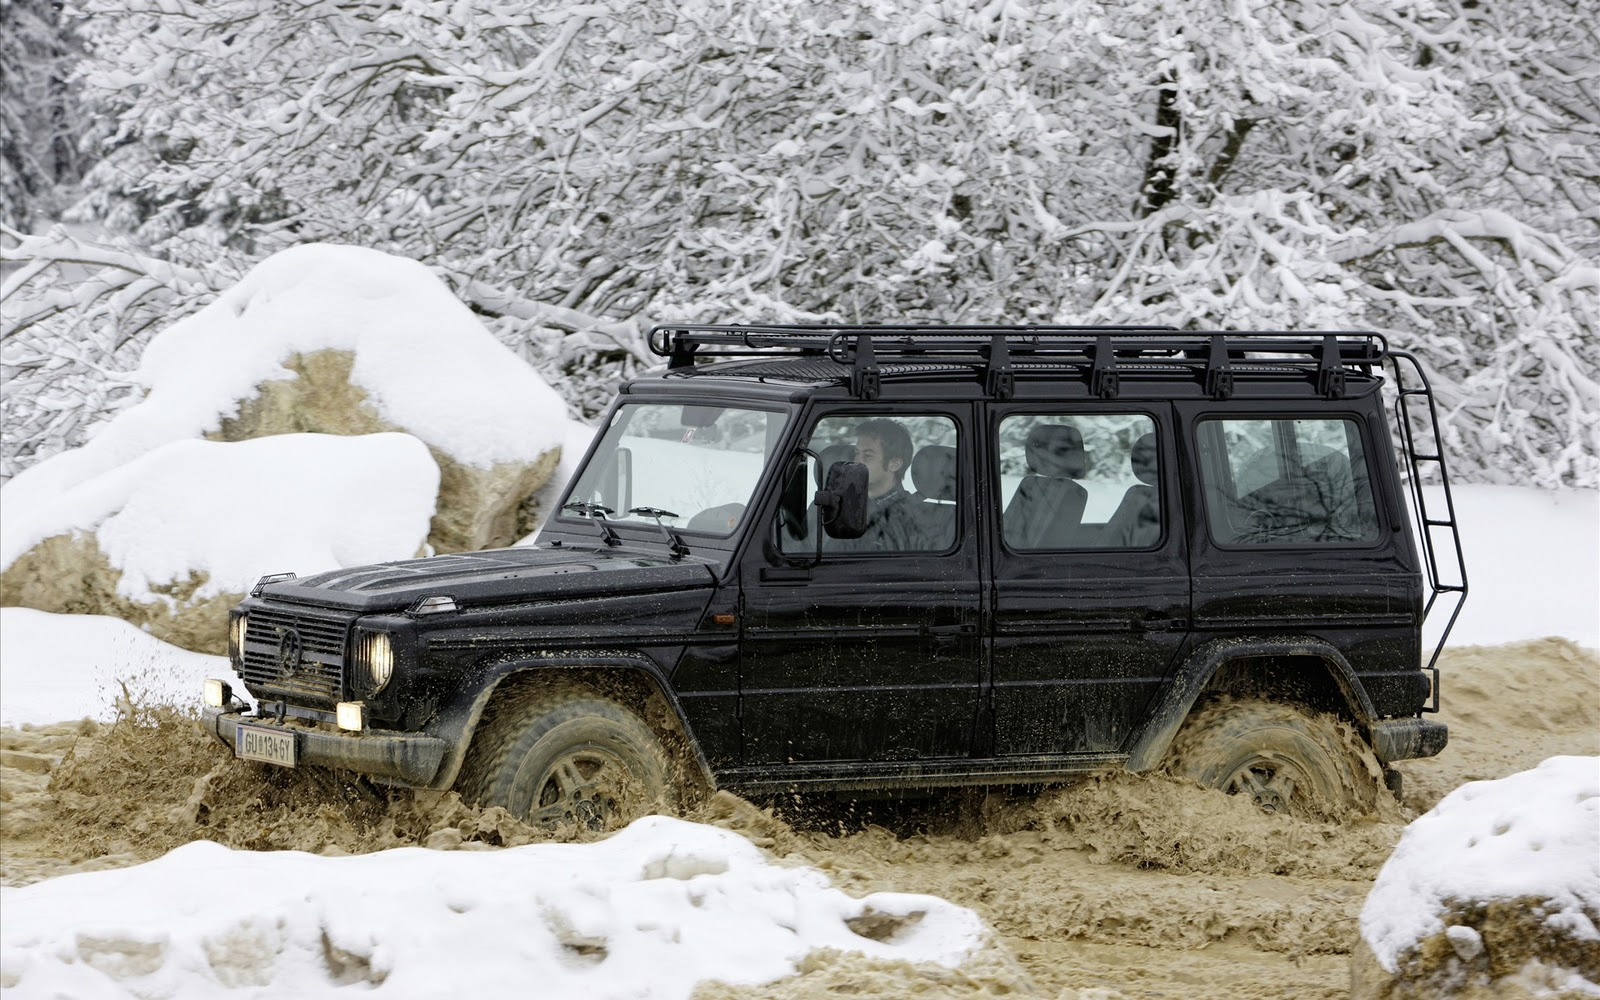 With locking differentials, a hood you can jump up and down on, short overhangs, and plenty of interior space, the G-Wagen is an unstoppable utility. Now you can afford to keep one in fuel as well.